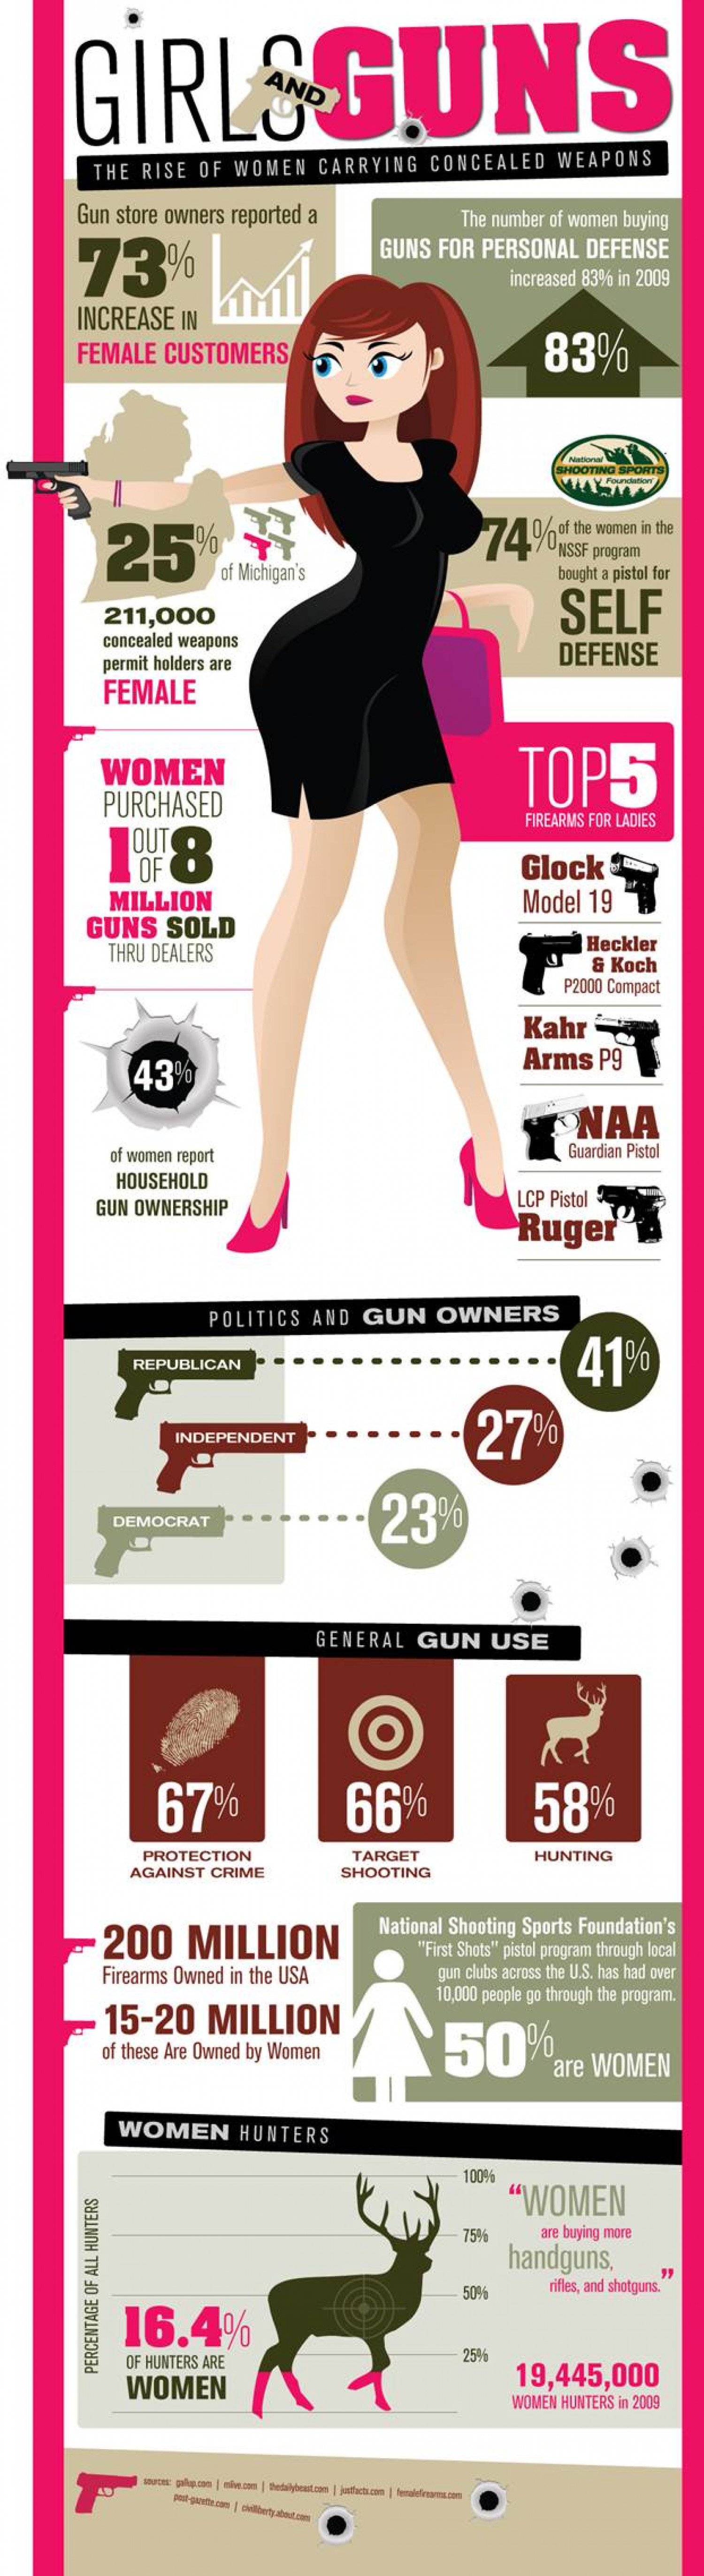 Girls & Guns - The Rise of Women Carrying Concealed Weapons Infographic